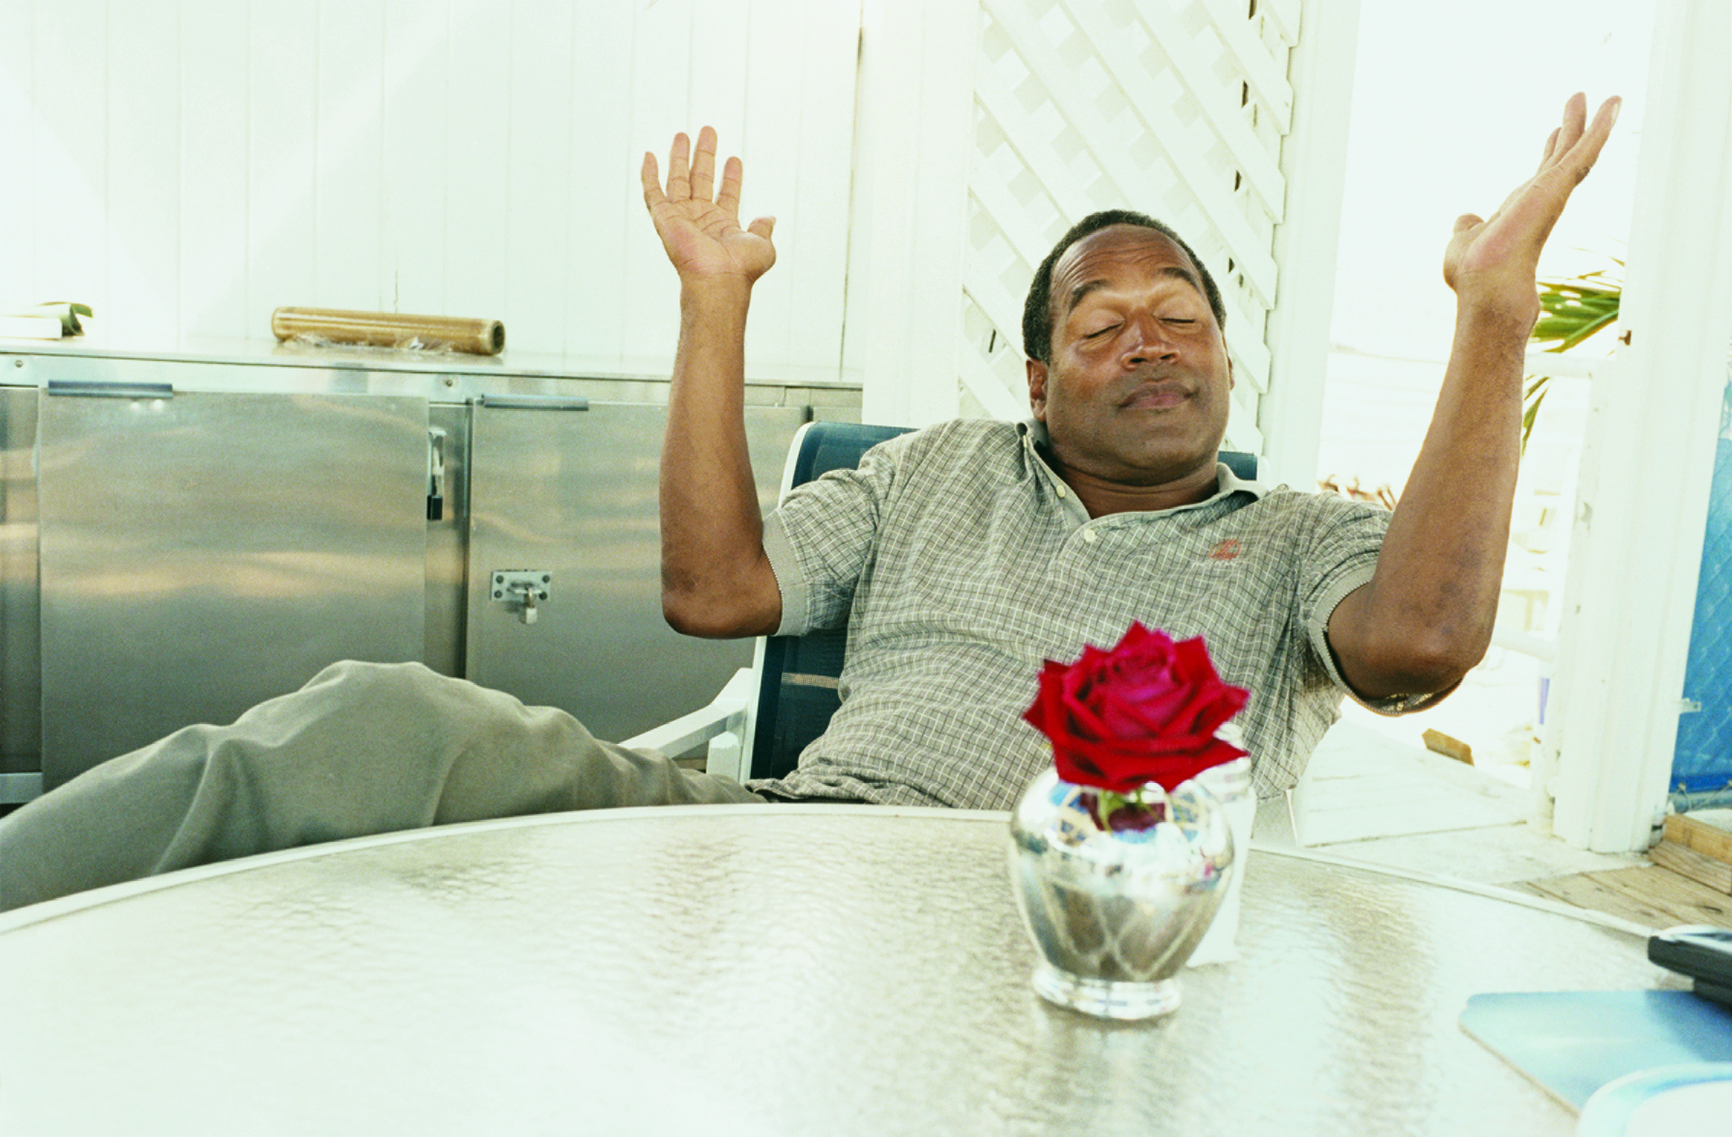 Juergen Teller, OJ Simpson, Only God knows, Miami, 2000 © Juergen Teller, courtesy Galerie Suzane Tarasieve, Paris